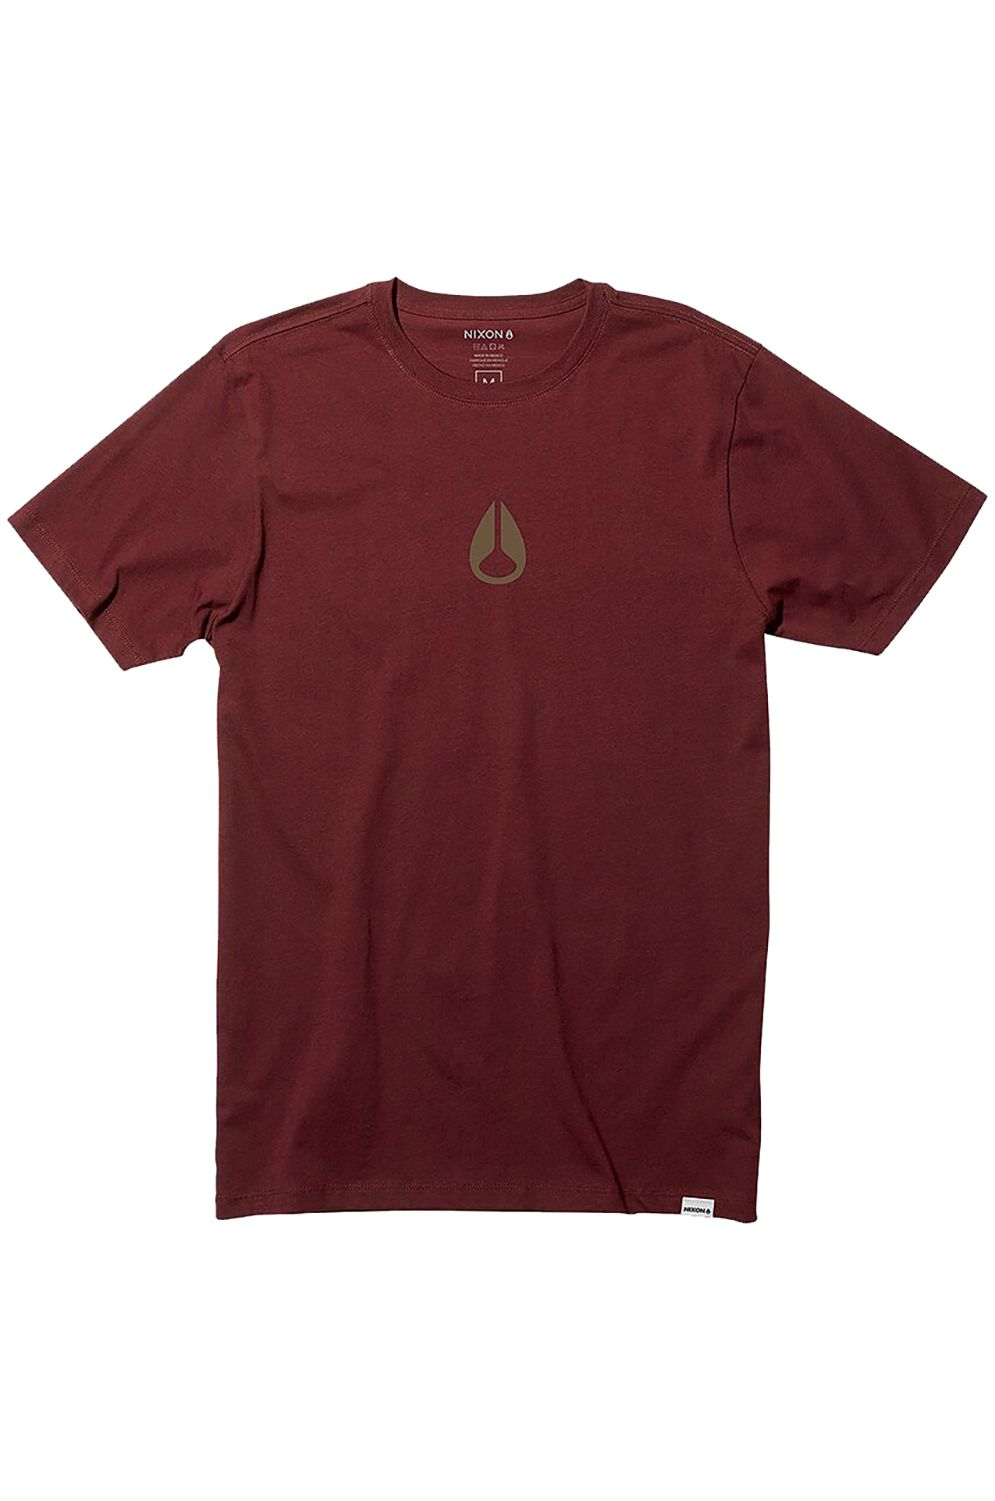 Nixon T-Shirt WINGS II Burgundy